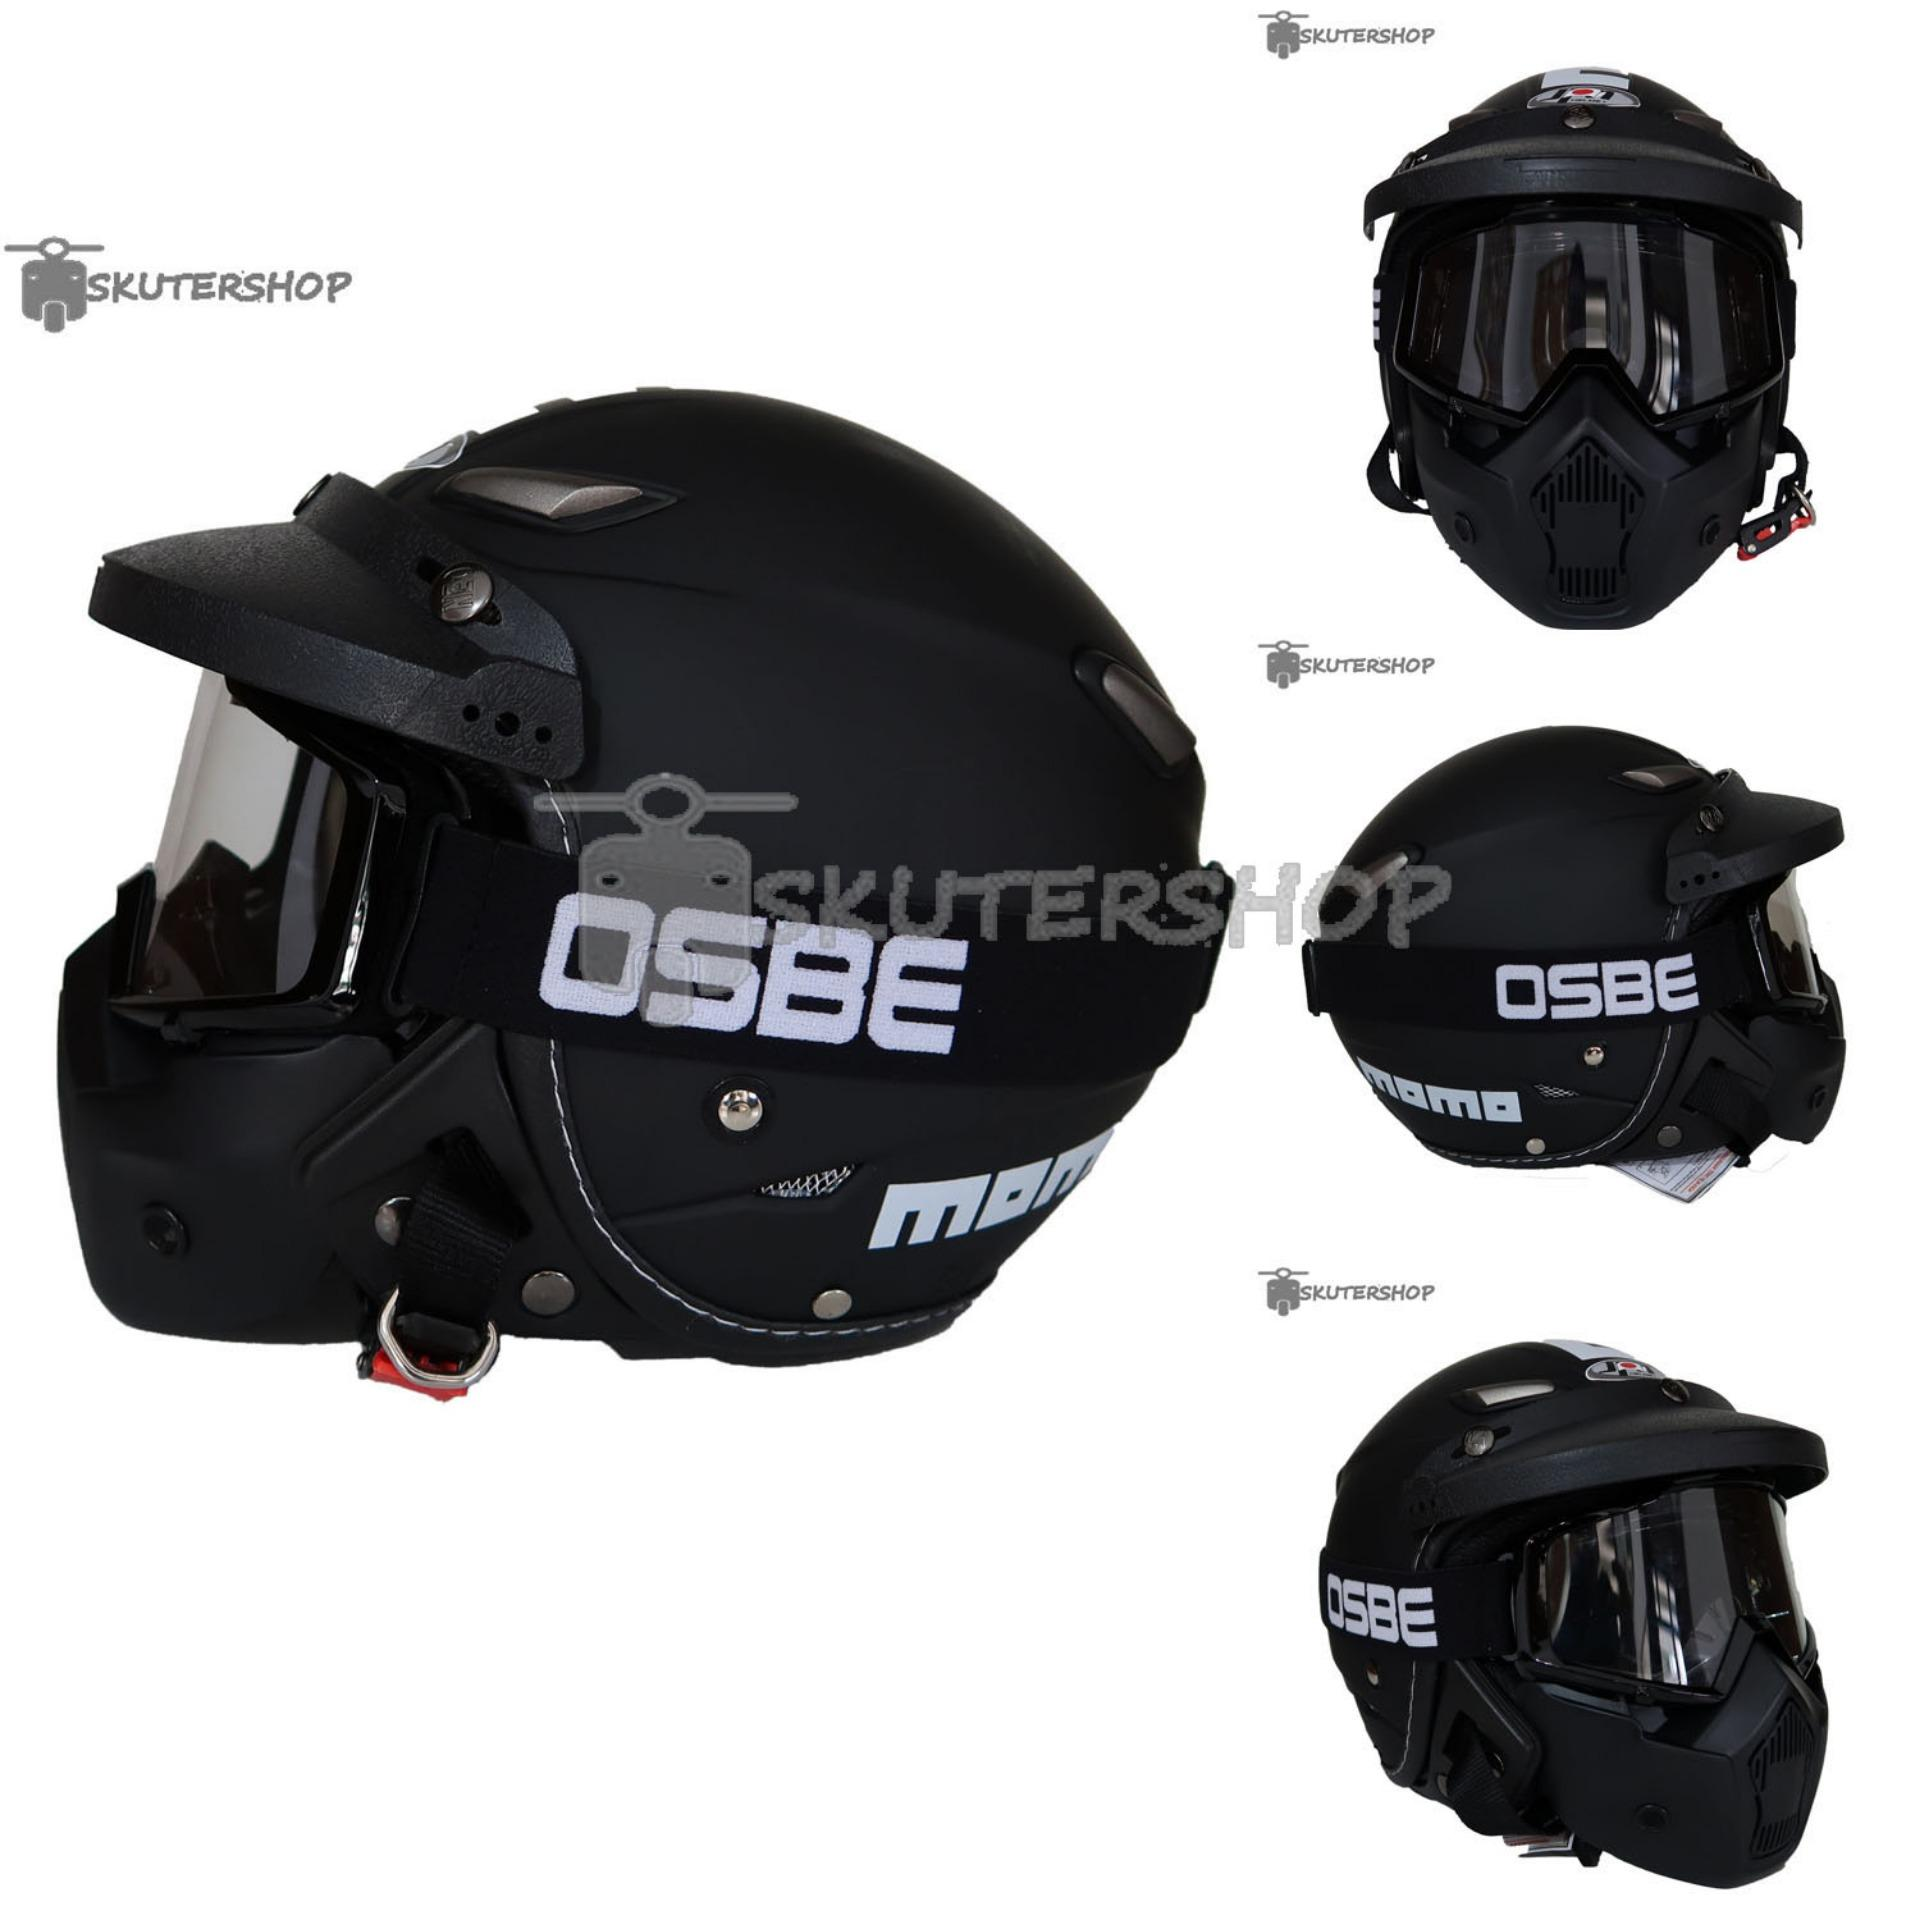 JPN Helm Momo Vintage With OSBE Goggle Mask Plus Pet Jeruk Hitam Retro Klasik Jap Style